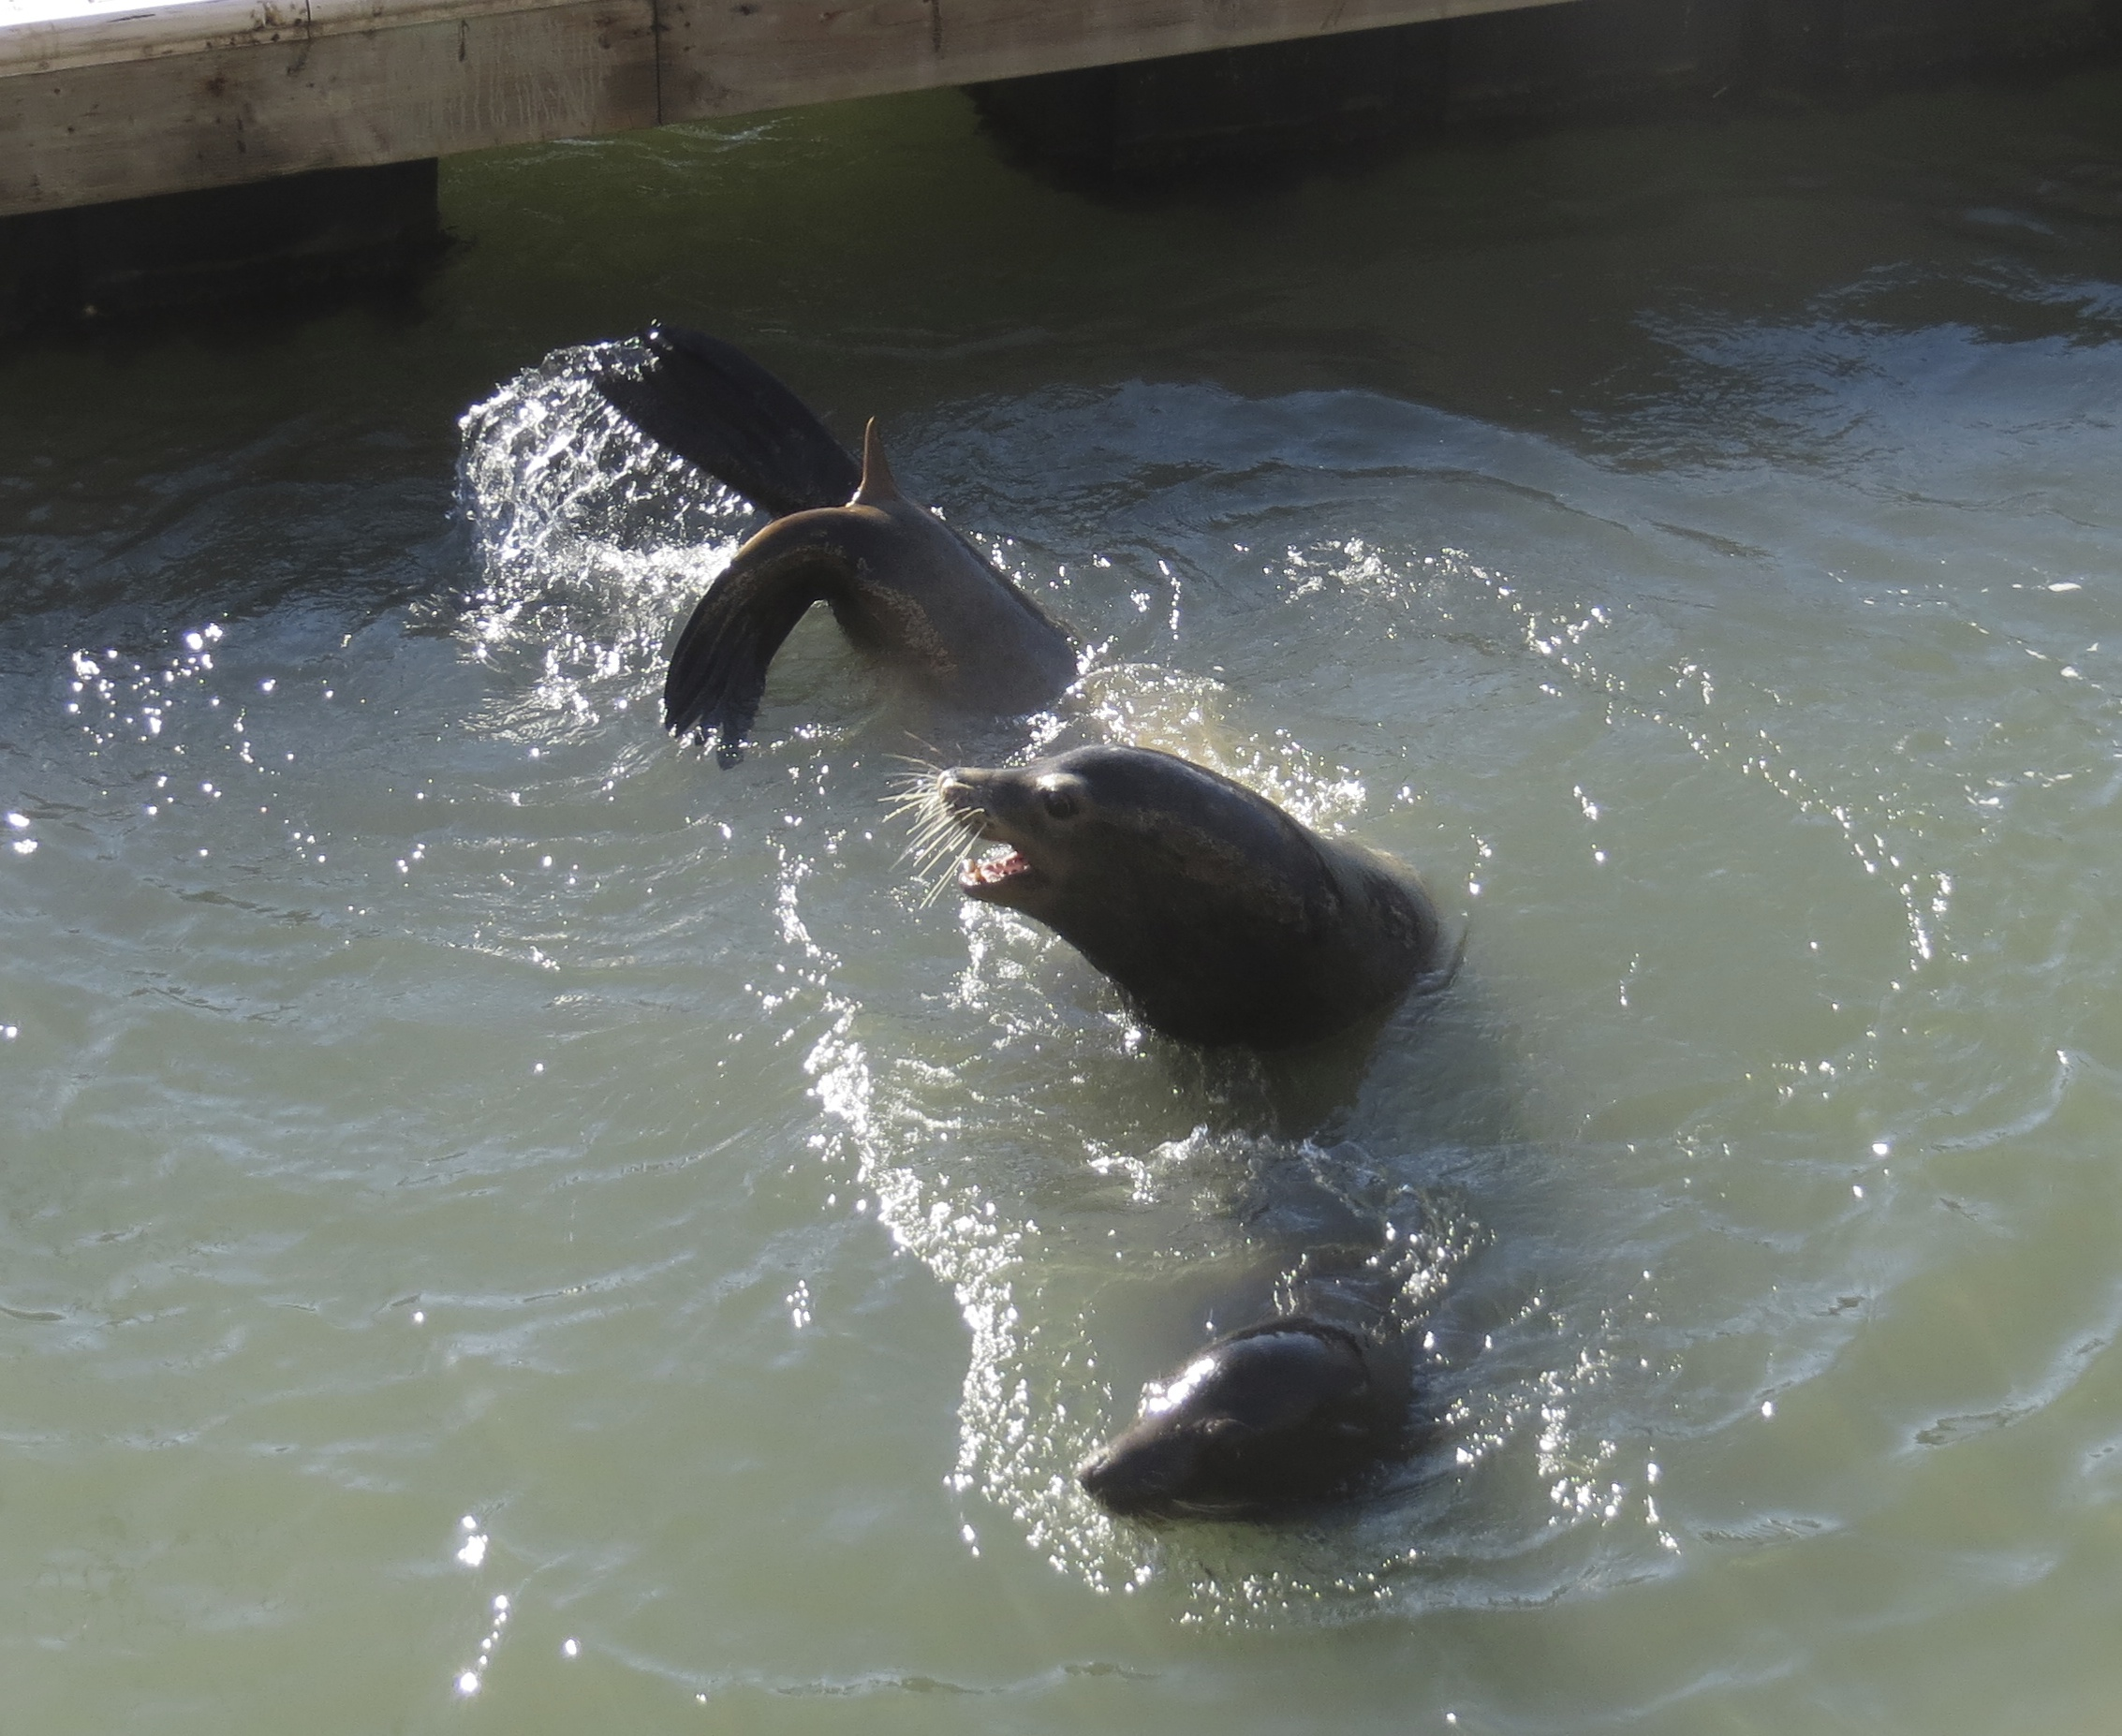 Two Sea Lions Playing in the Water